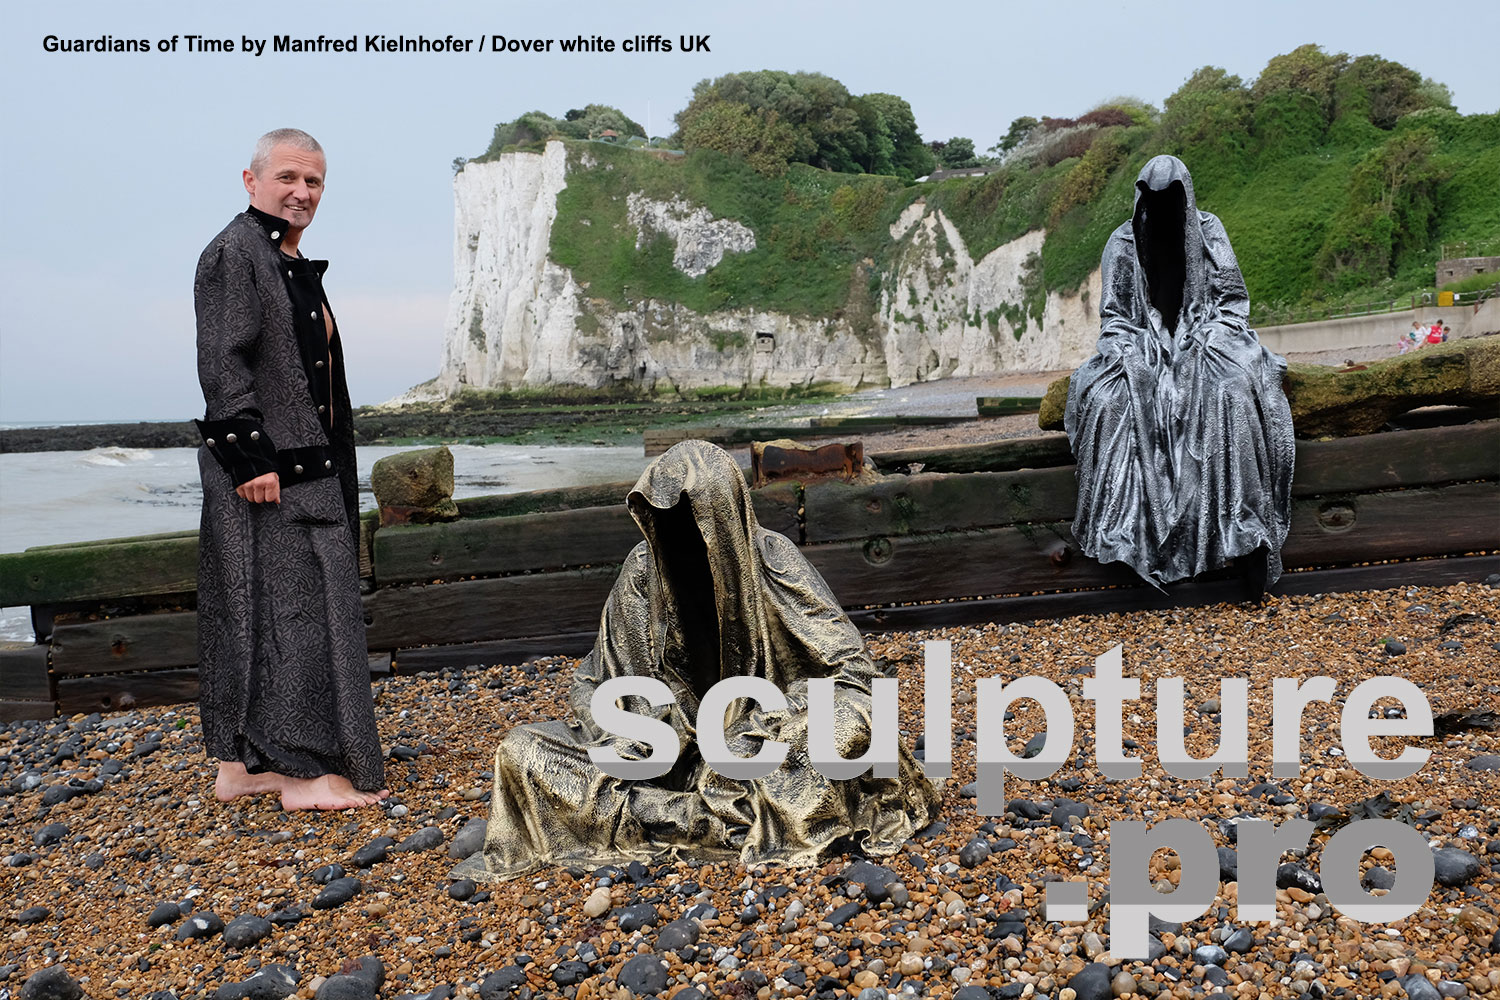 dover-white-cliffs-united-kingdom-of-great-britain-england-guardians-of-time-manfred-kili-kielnhofer-contemporary-art-public-sculpture-modern-design-arts-antique-statue-5613